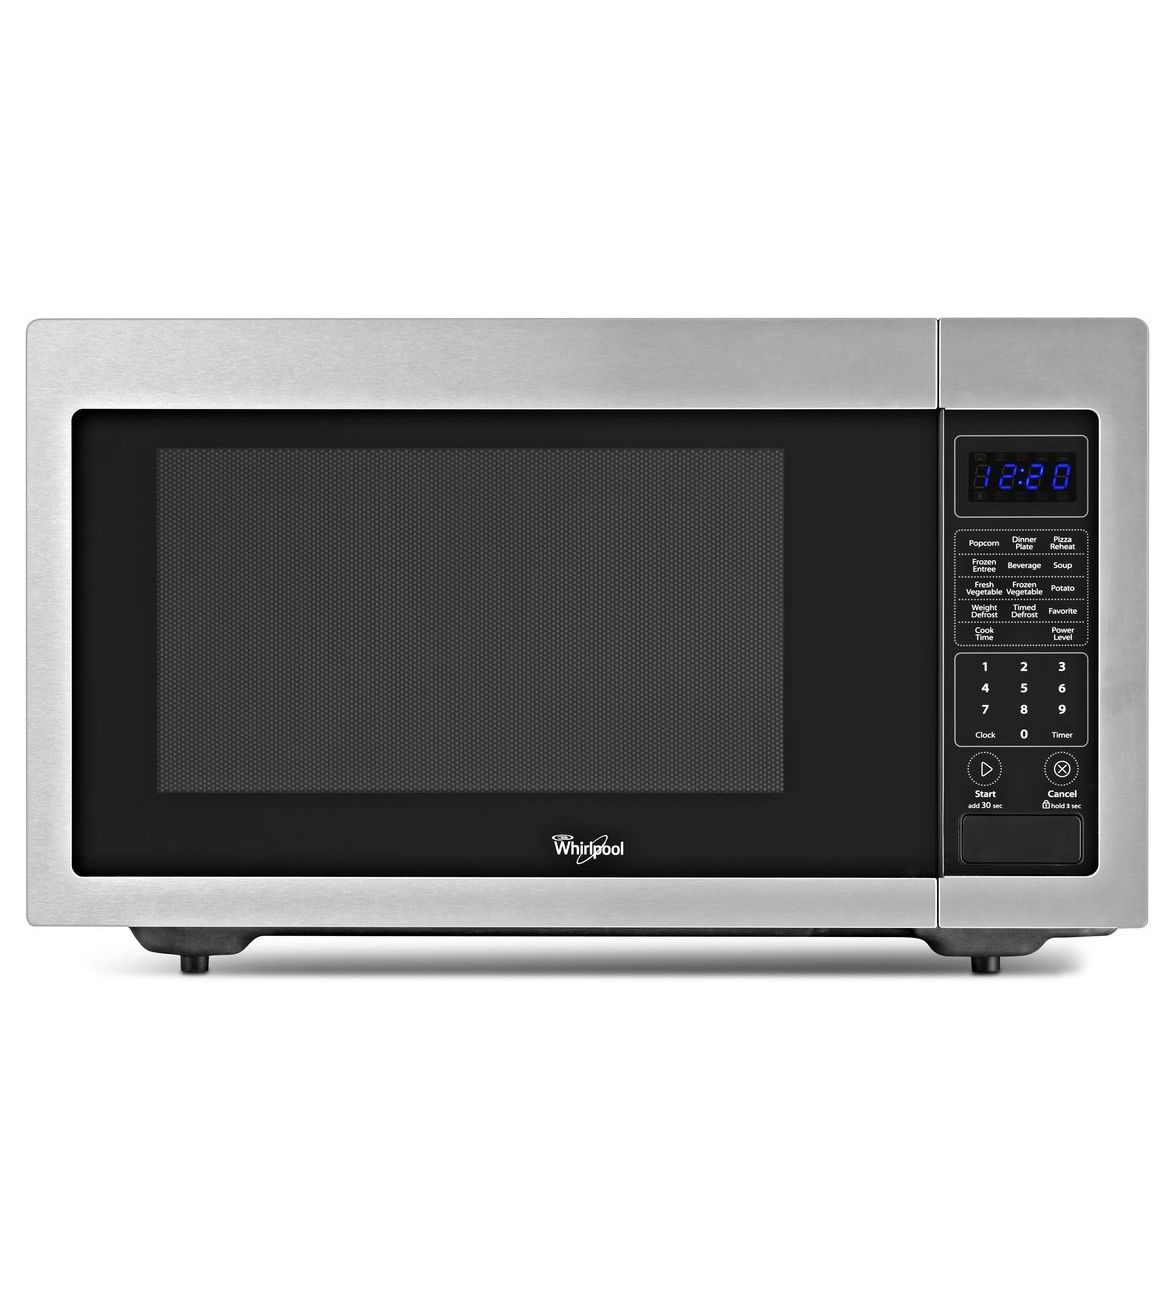 Whirlpool 1 6 Cu Ft Countertop Microwave With 1 200 Watts Cooking Power Wmc30516as Stainless Steel Countertop Microwave Oven Countertop Microwave Microwave